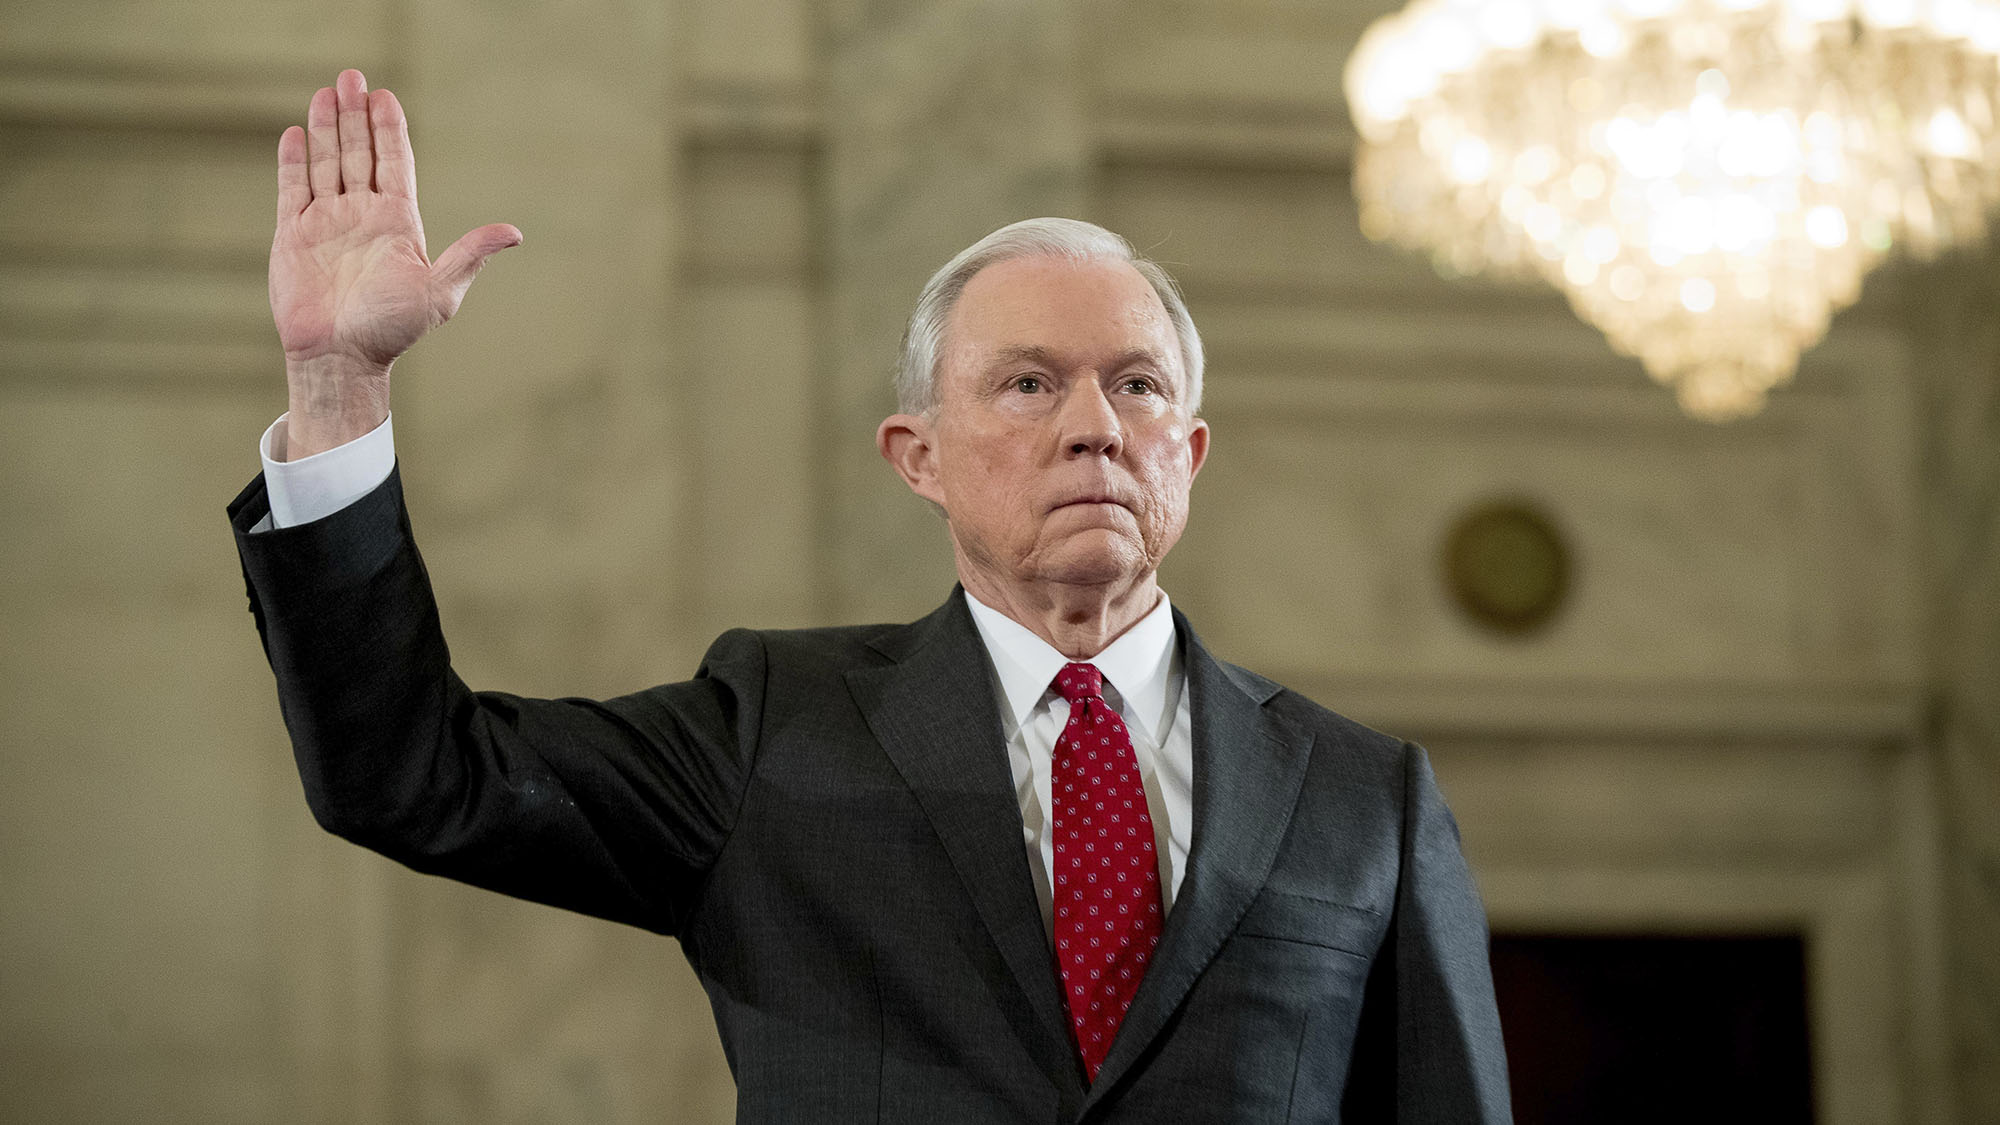 Republicans are trying to rewrite Jeff Sessions' history on race